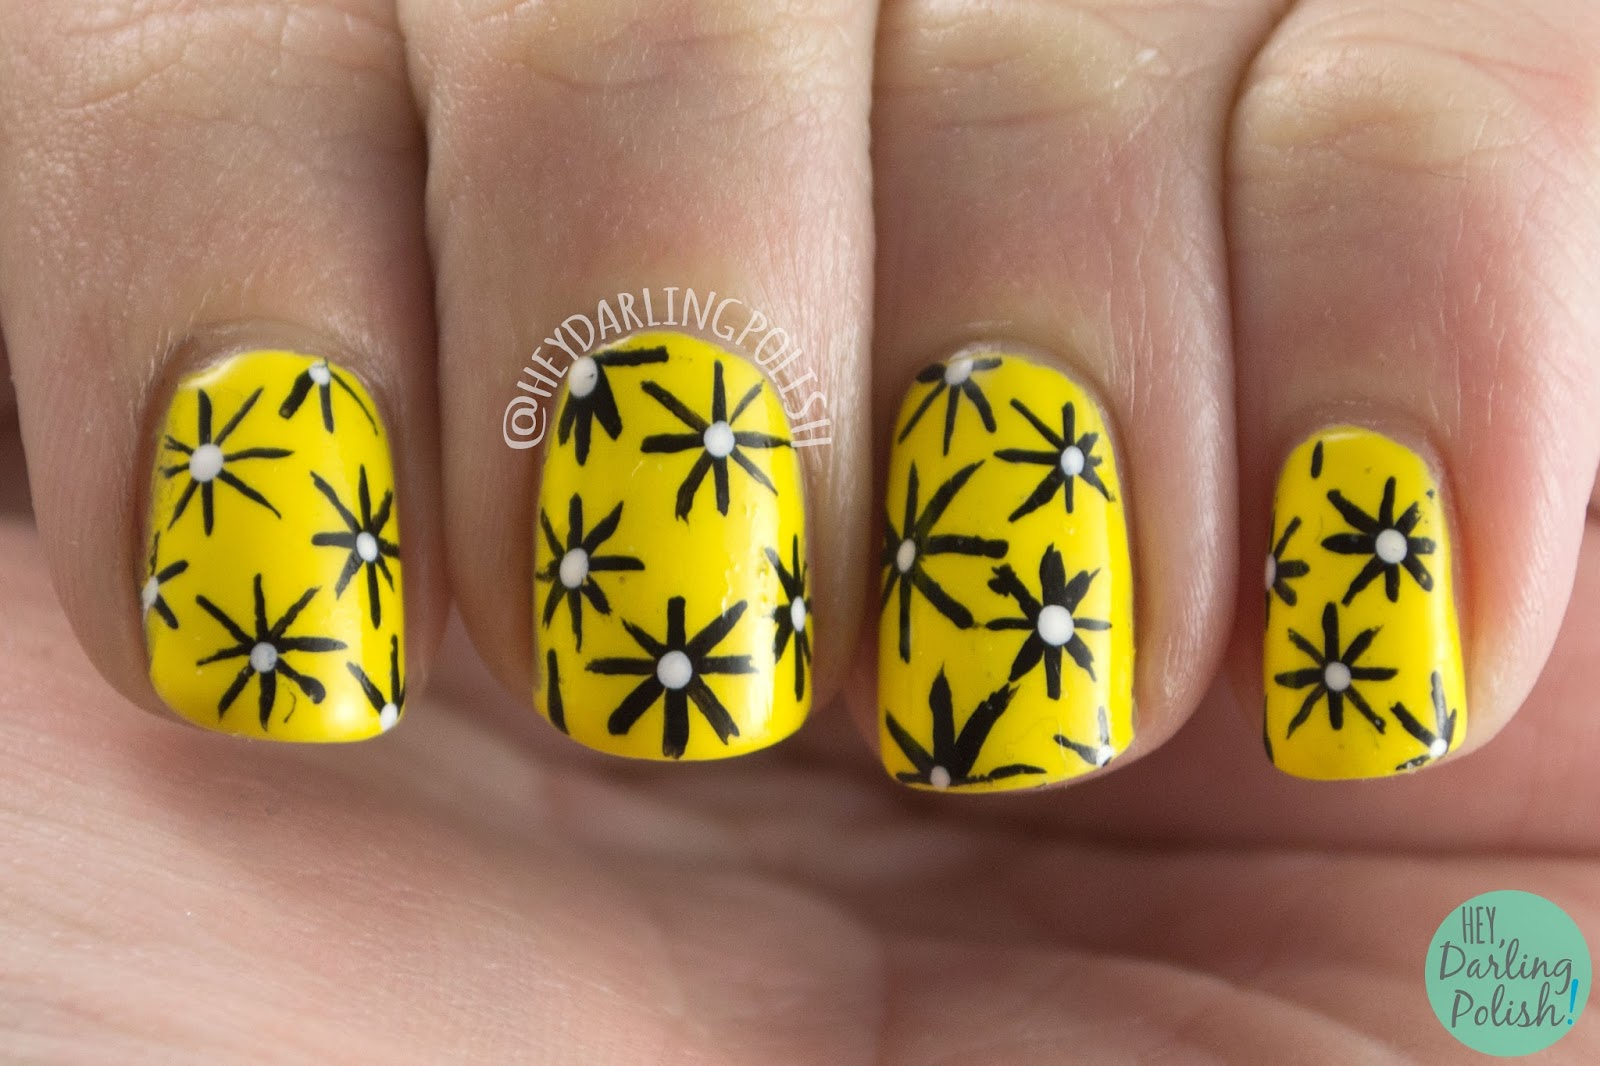 nails, nail art, nail polish, yellow, hey darling polish, fashion, stars, the nail challenge collaborative